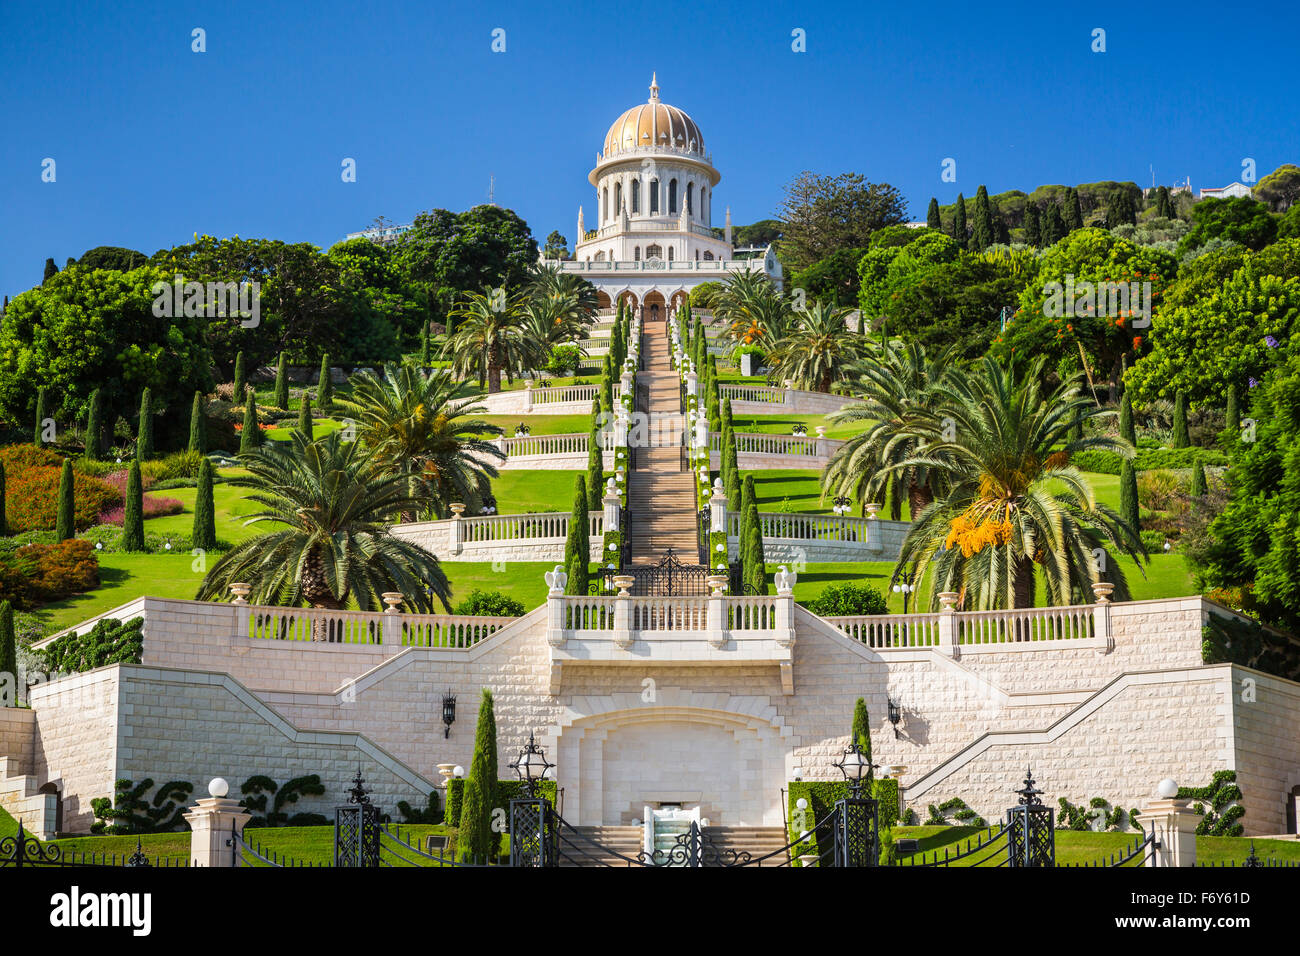 The Baha I Shrine And Gardens On The Slopes Of Mount